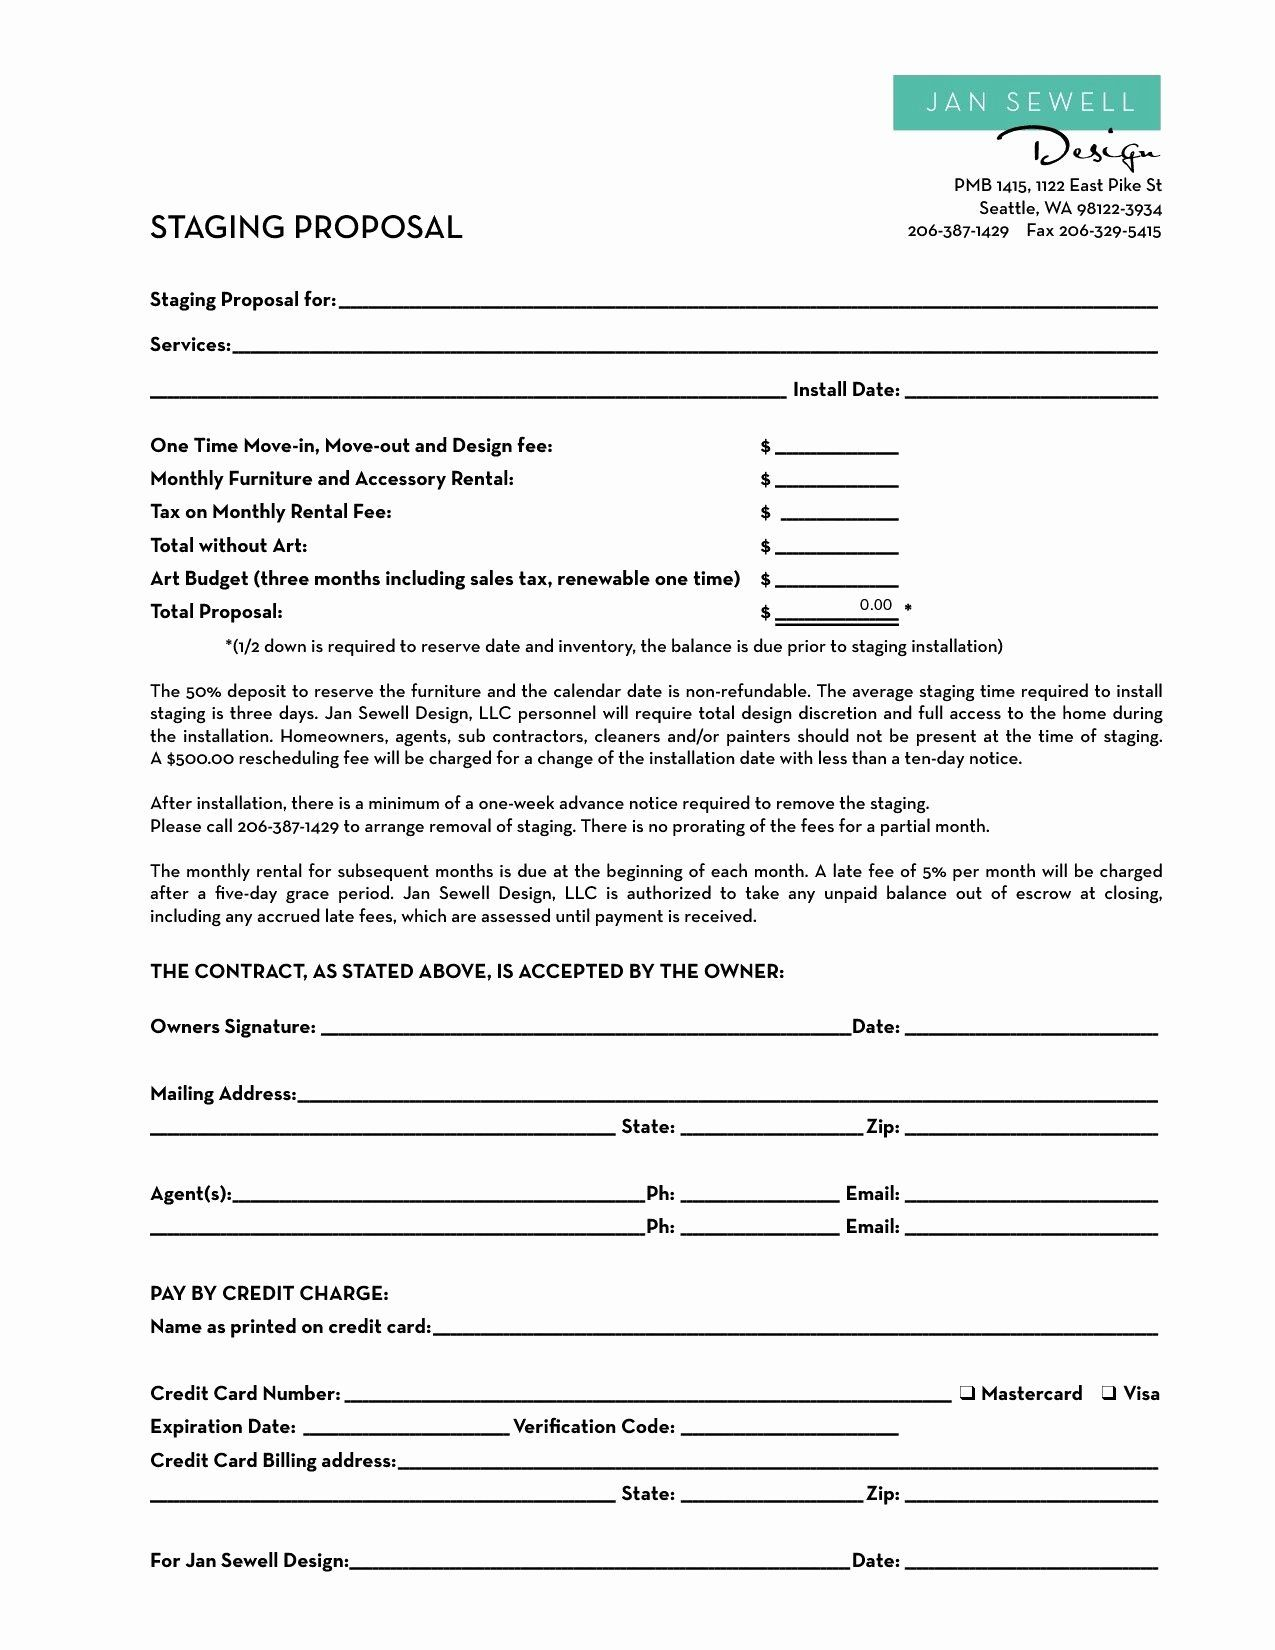 Graphic Design Contract Template Pdf Awesome Freelance Graphic Design Proposal Template New Magnificent Home Staging Interior Design Template Contract Template Free home staging contract template